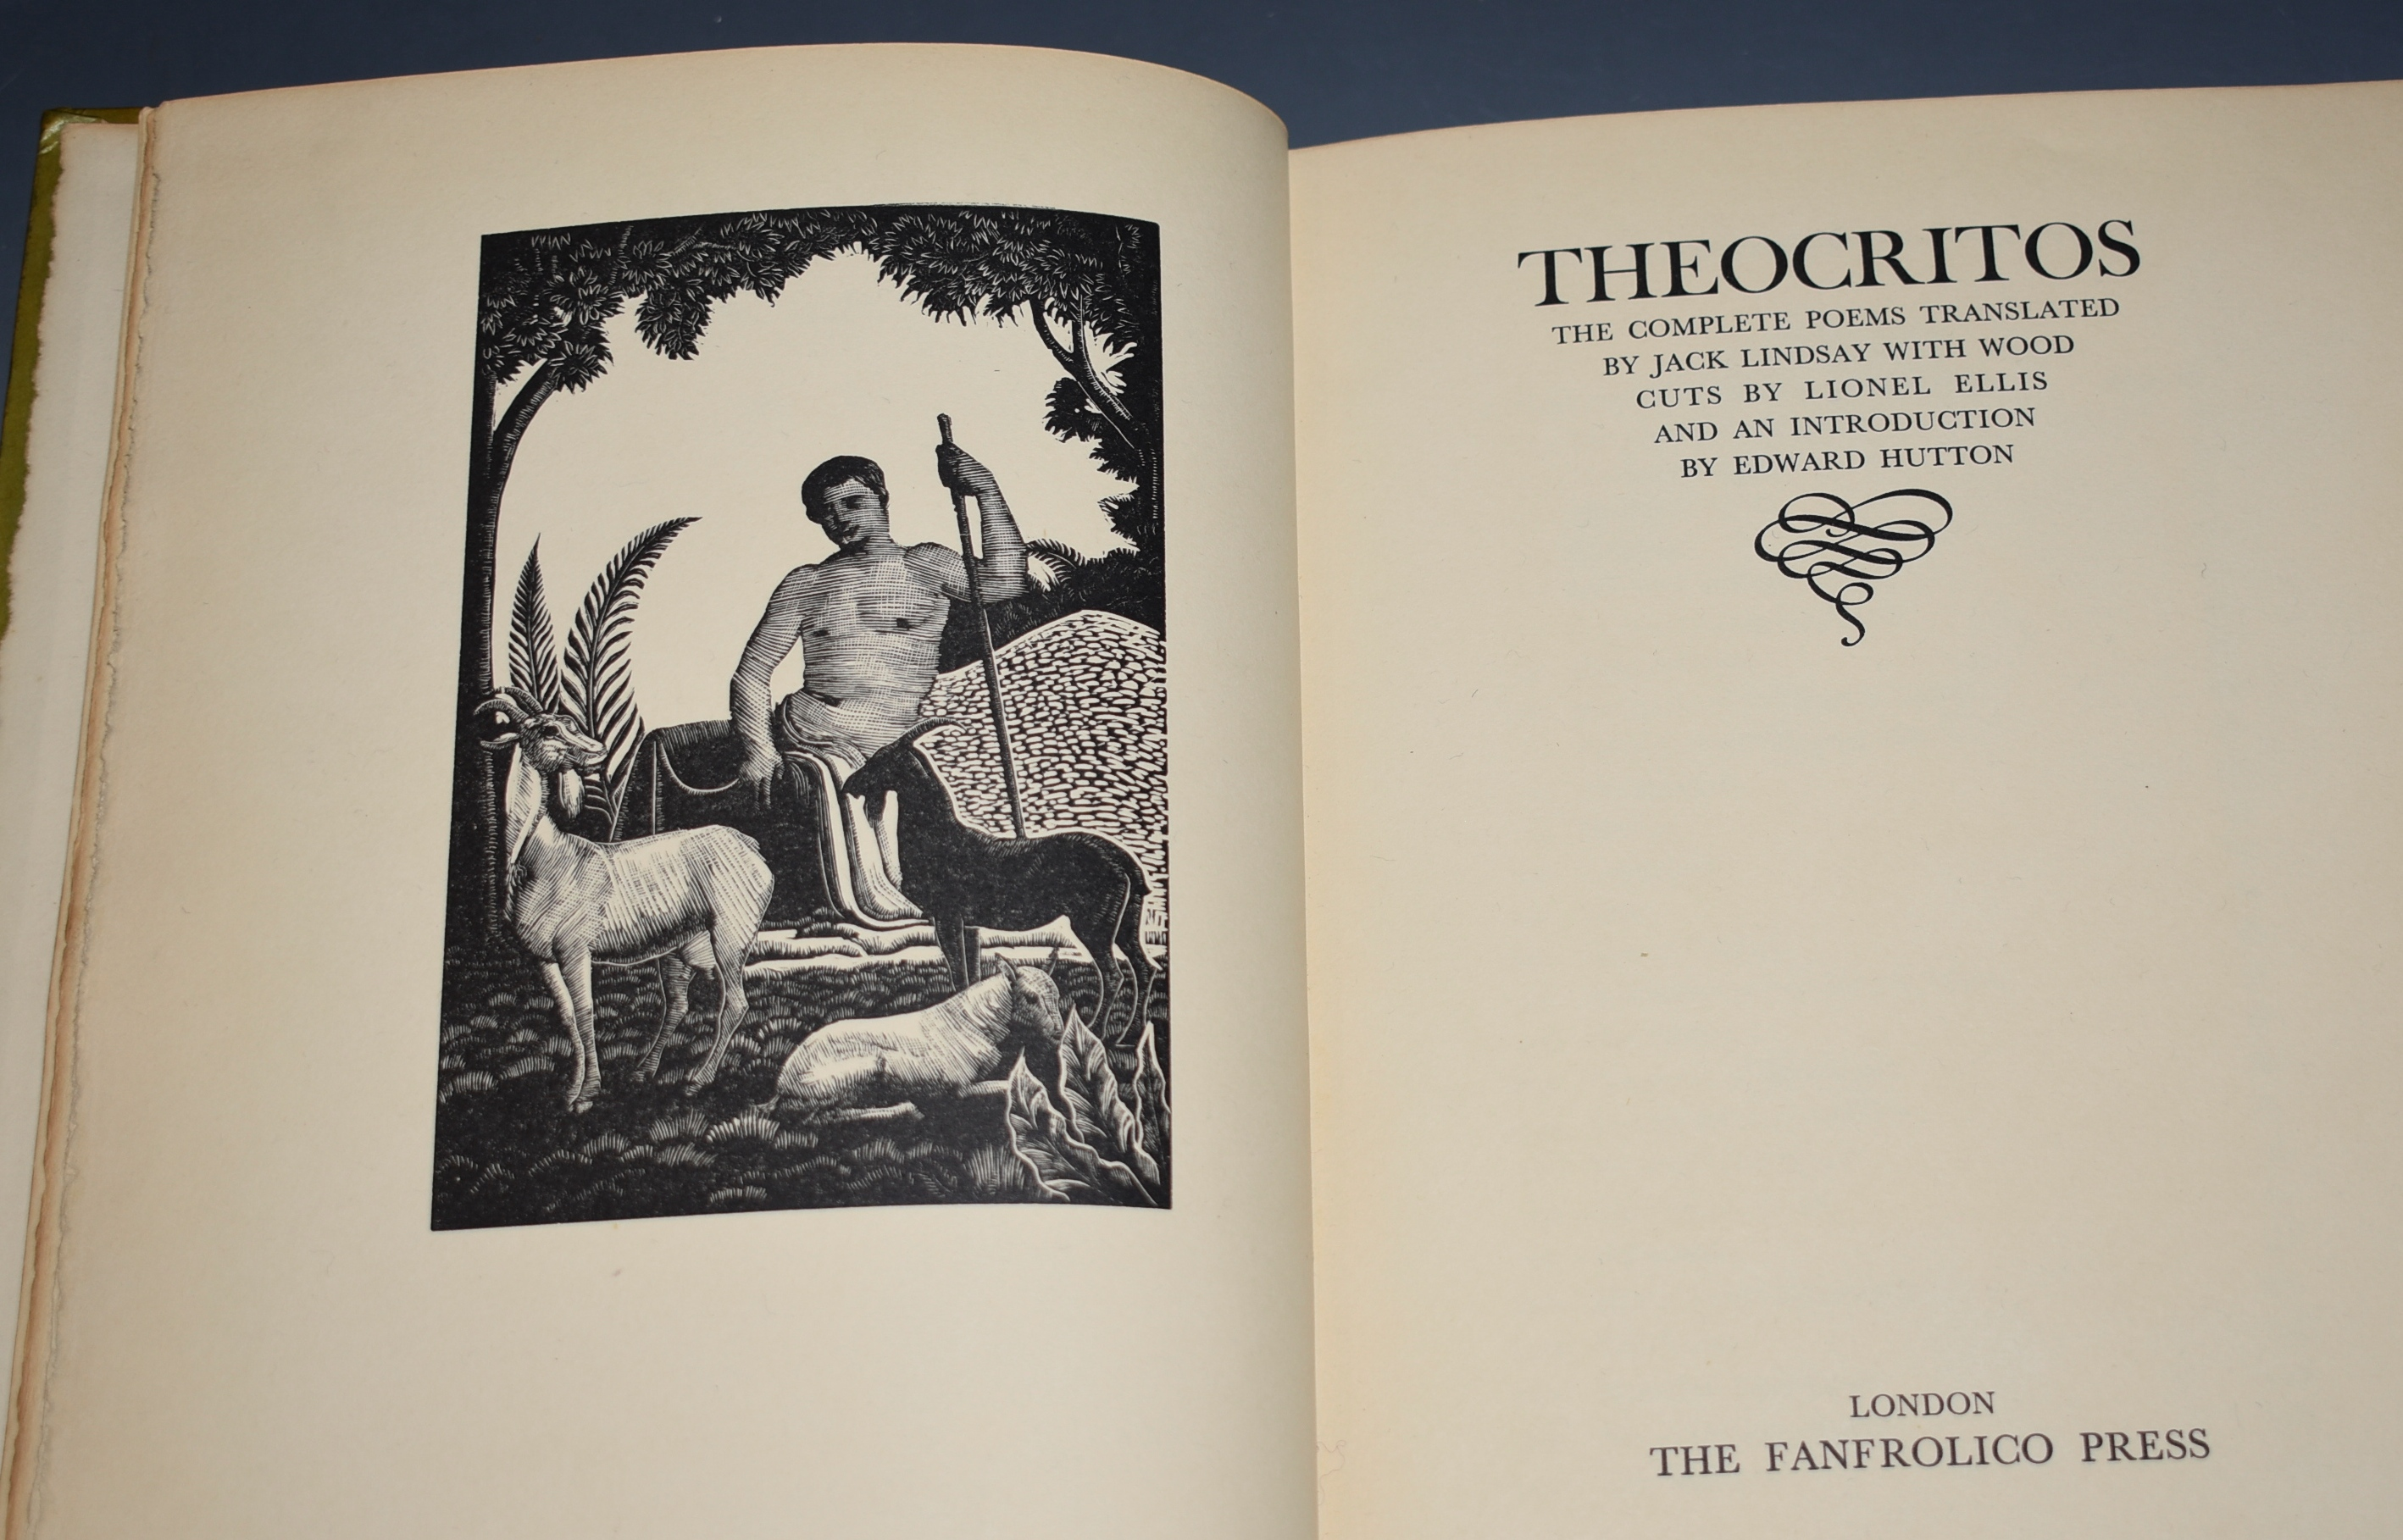 Image for Theocritos: The Complete Poems Translated by Jack Lindsay, with Wood Cuts by Lionel Ellis and an Introduction by Edward Hutton. Limited Numbered Edition.